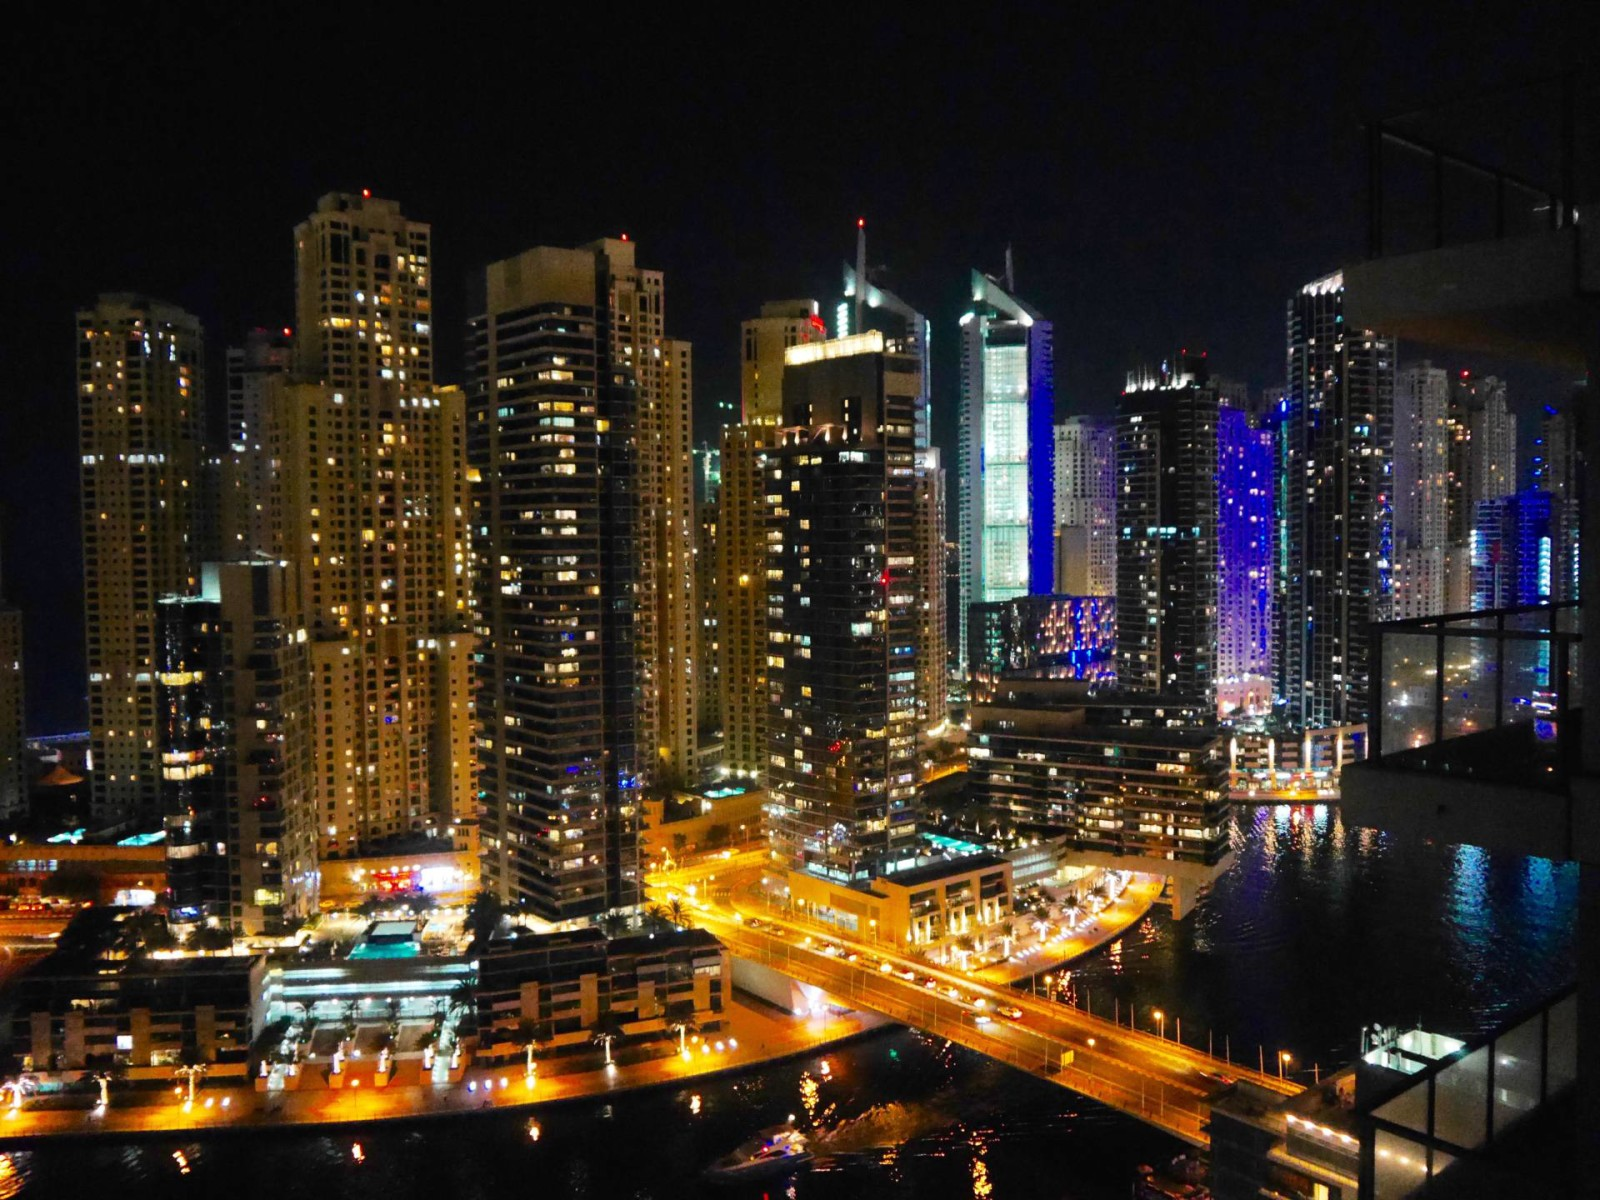 Dubai Marina - Things To Know Before Visiting Dubai